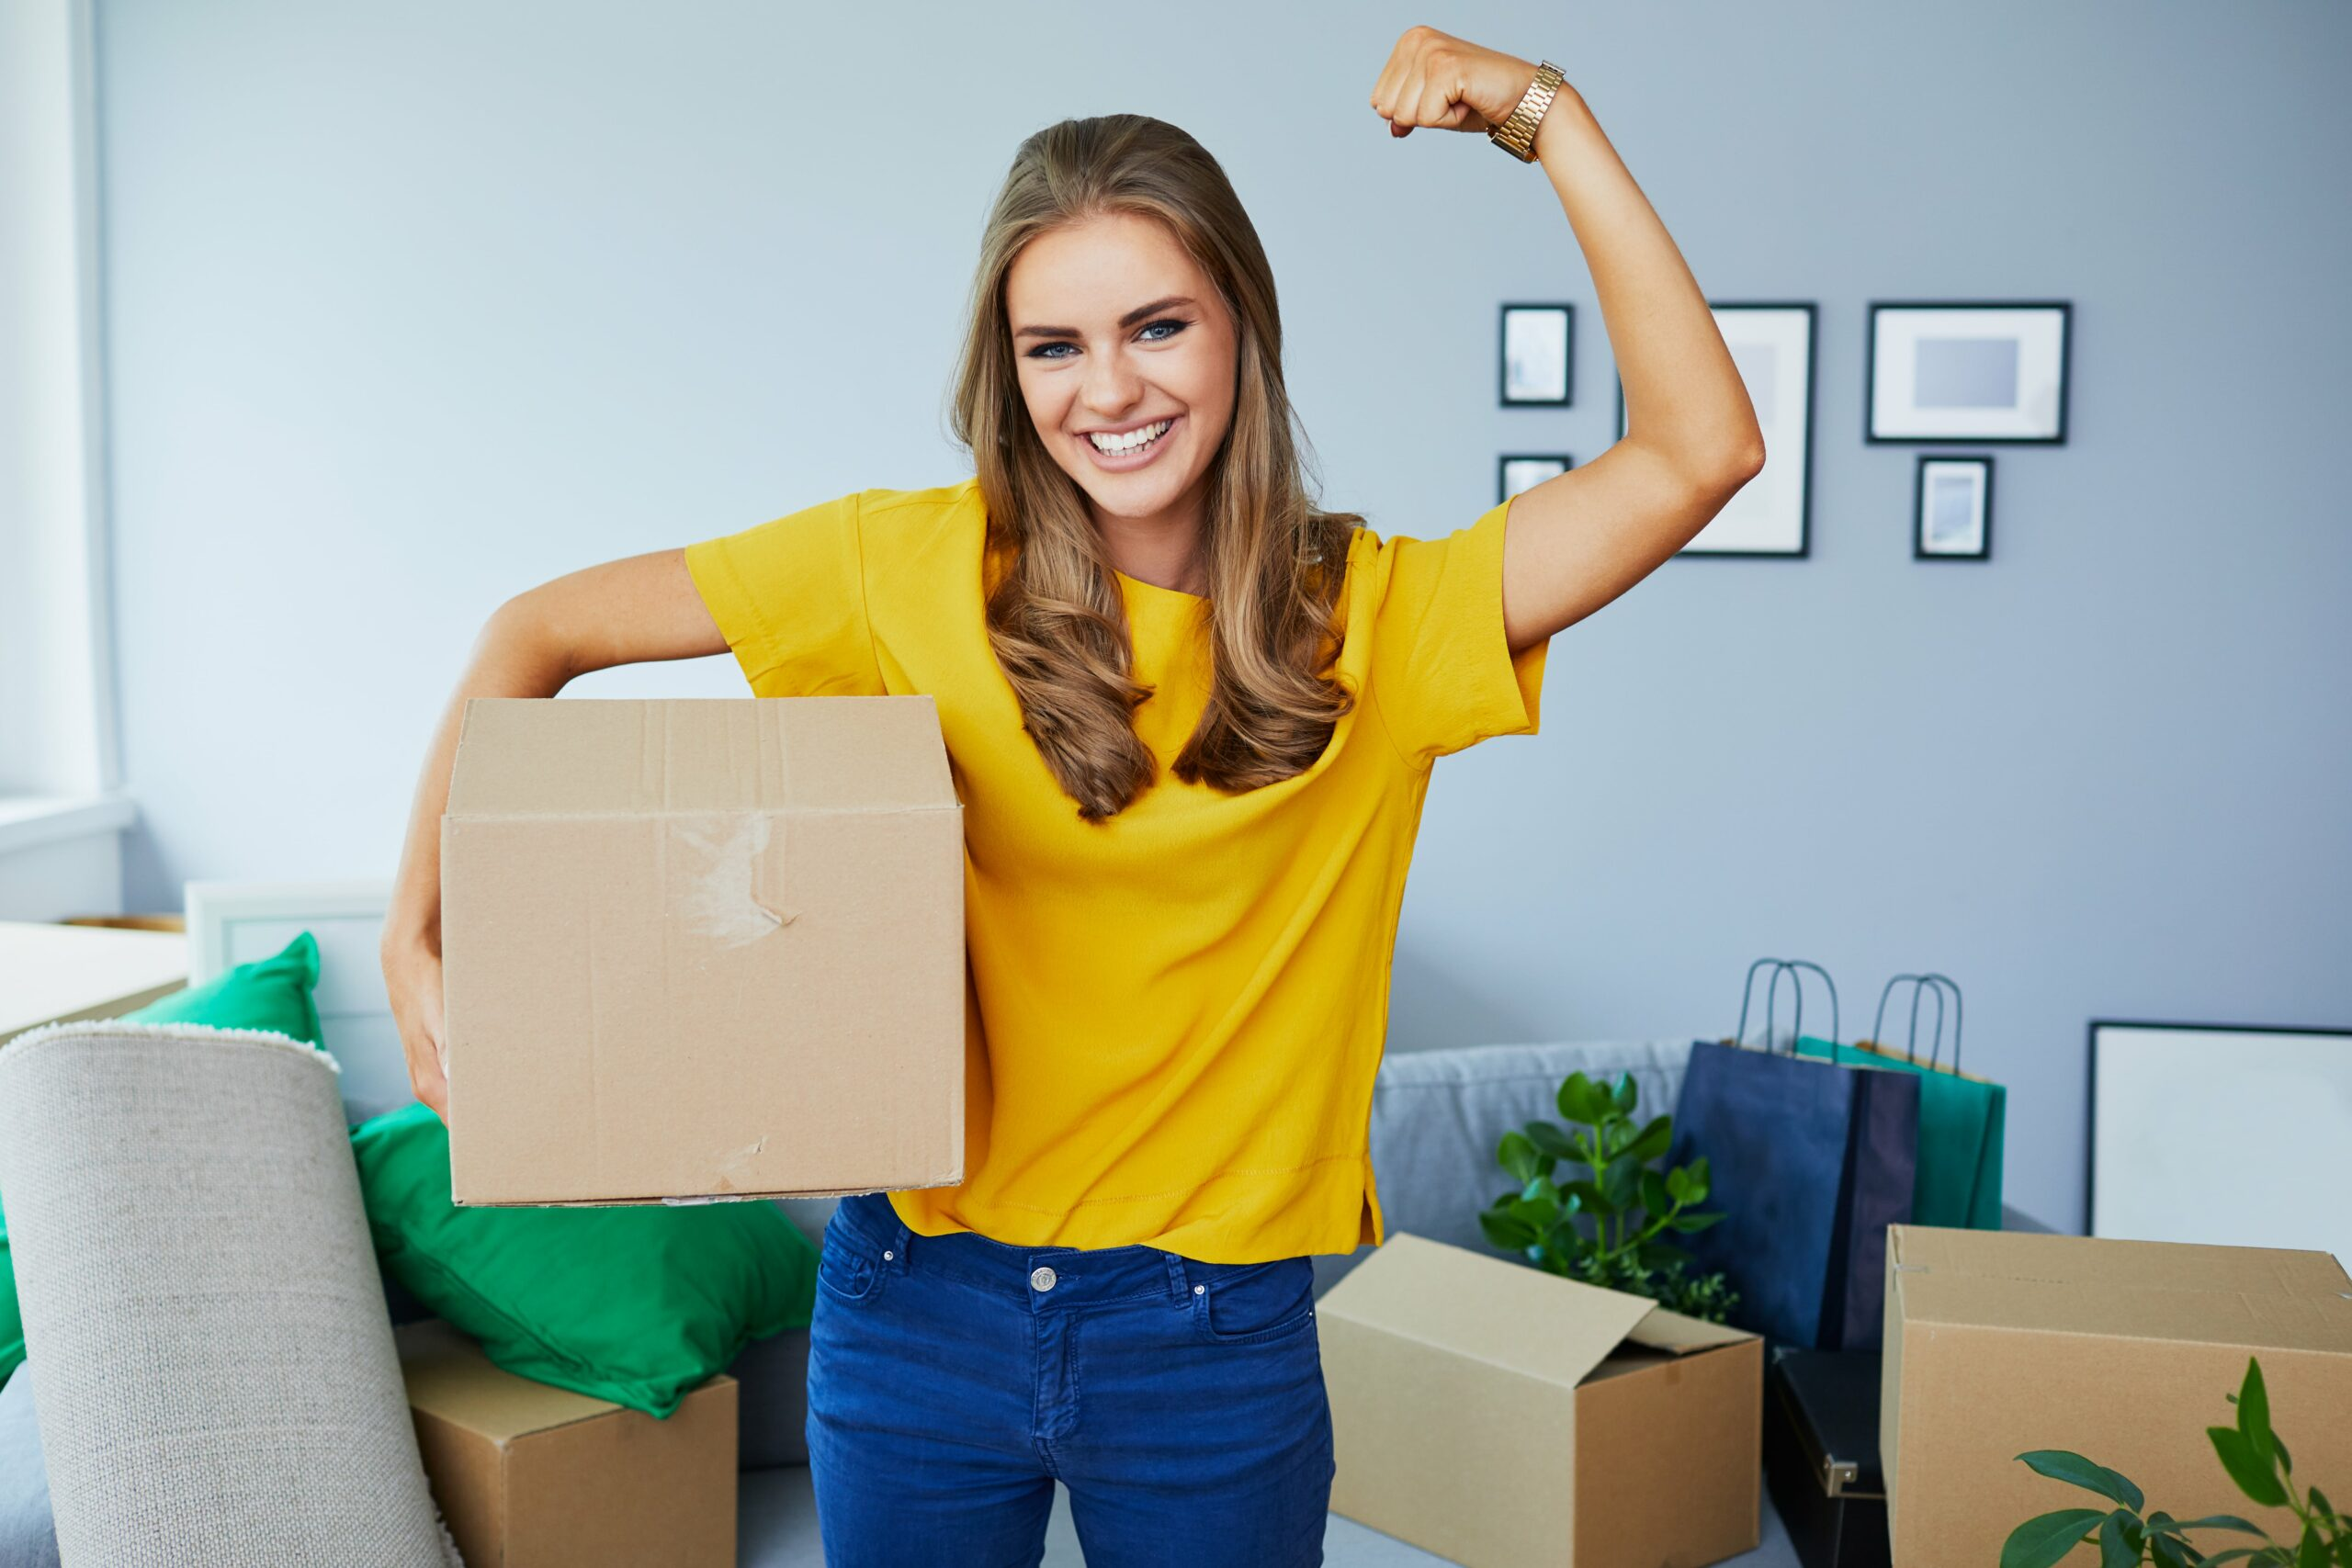 girl in yellow shirt flexing arm in victory while holding a box.